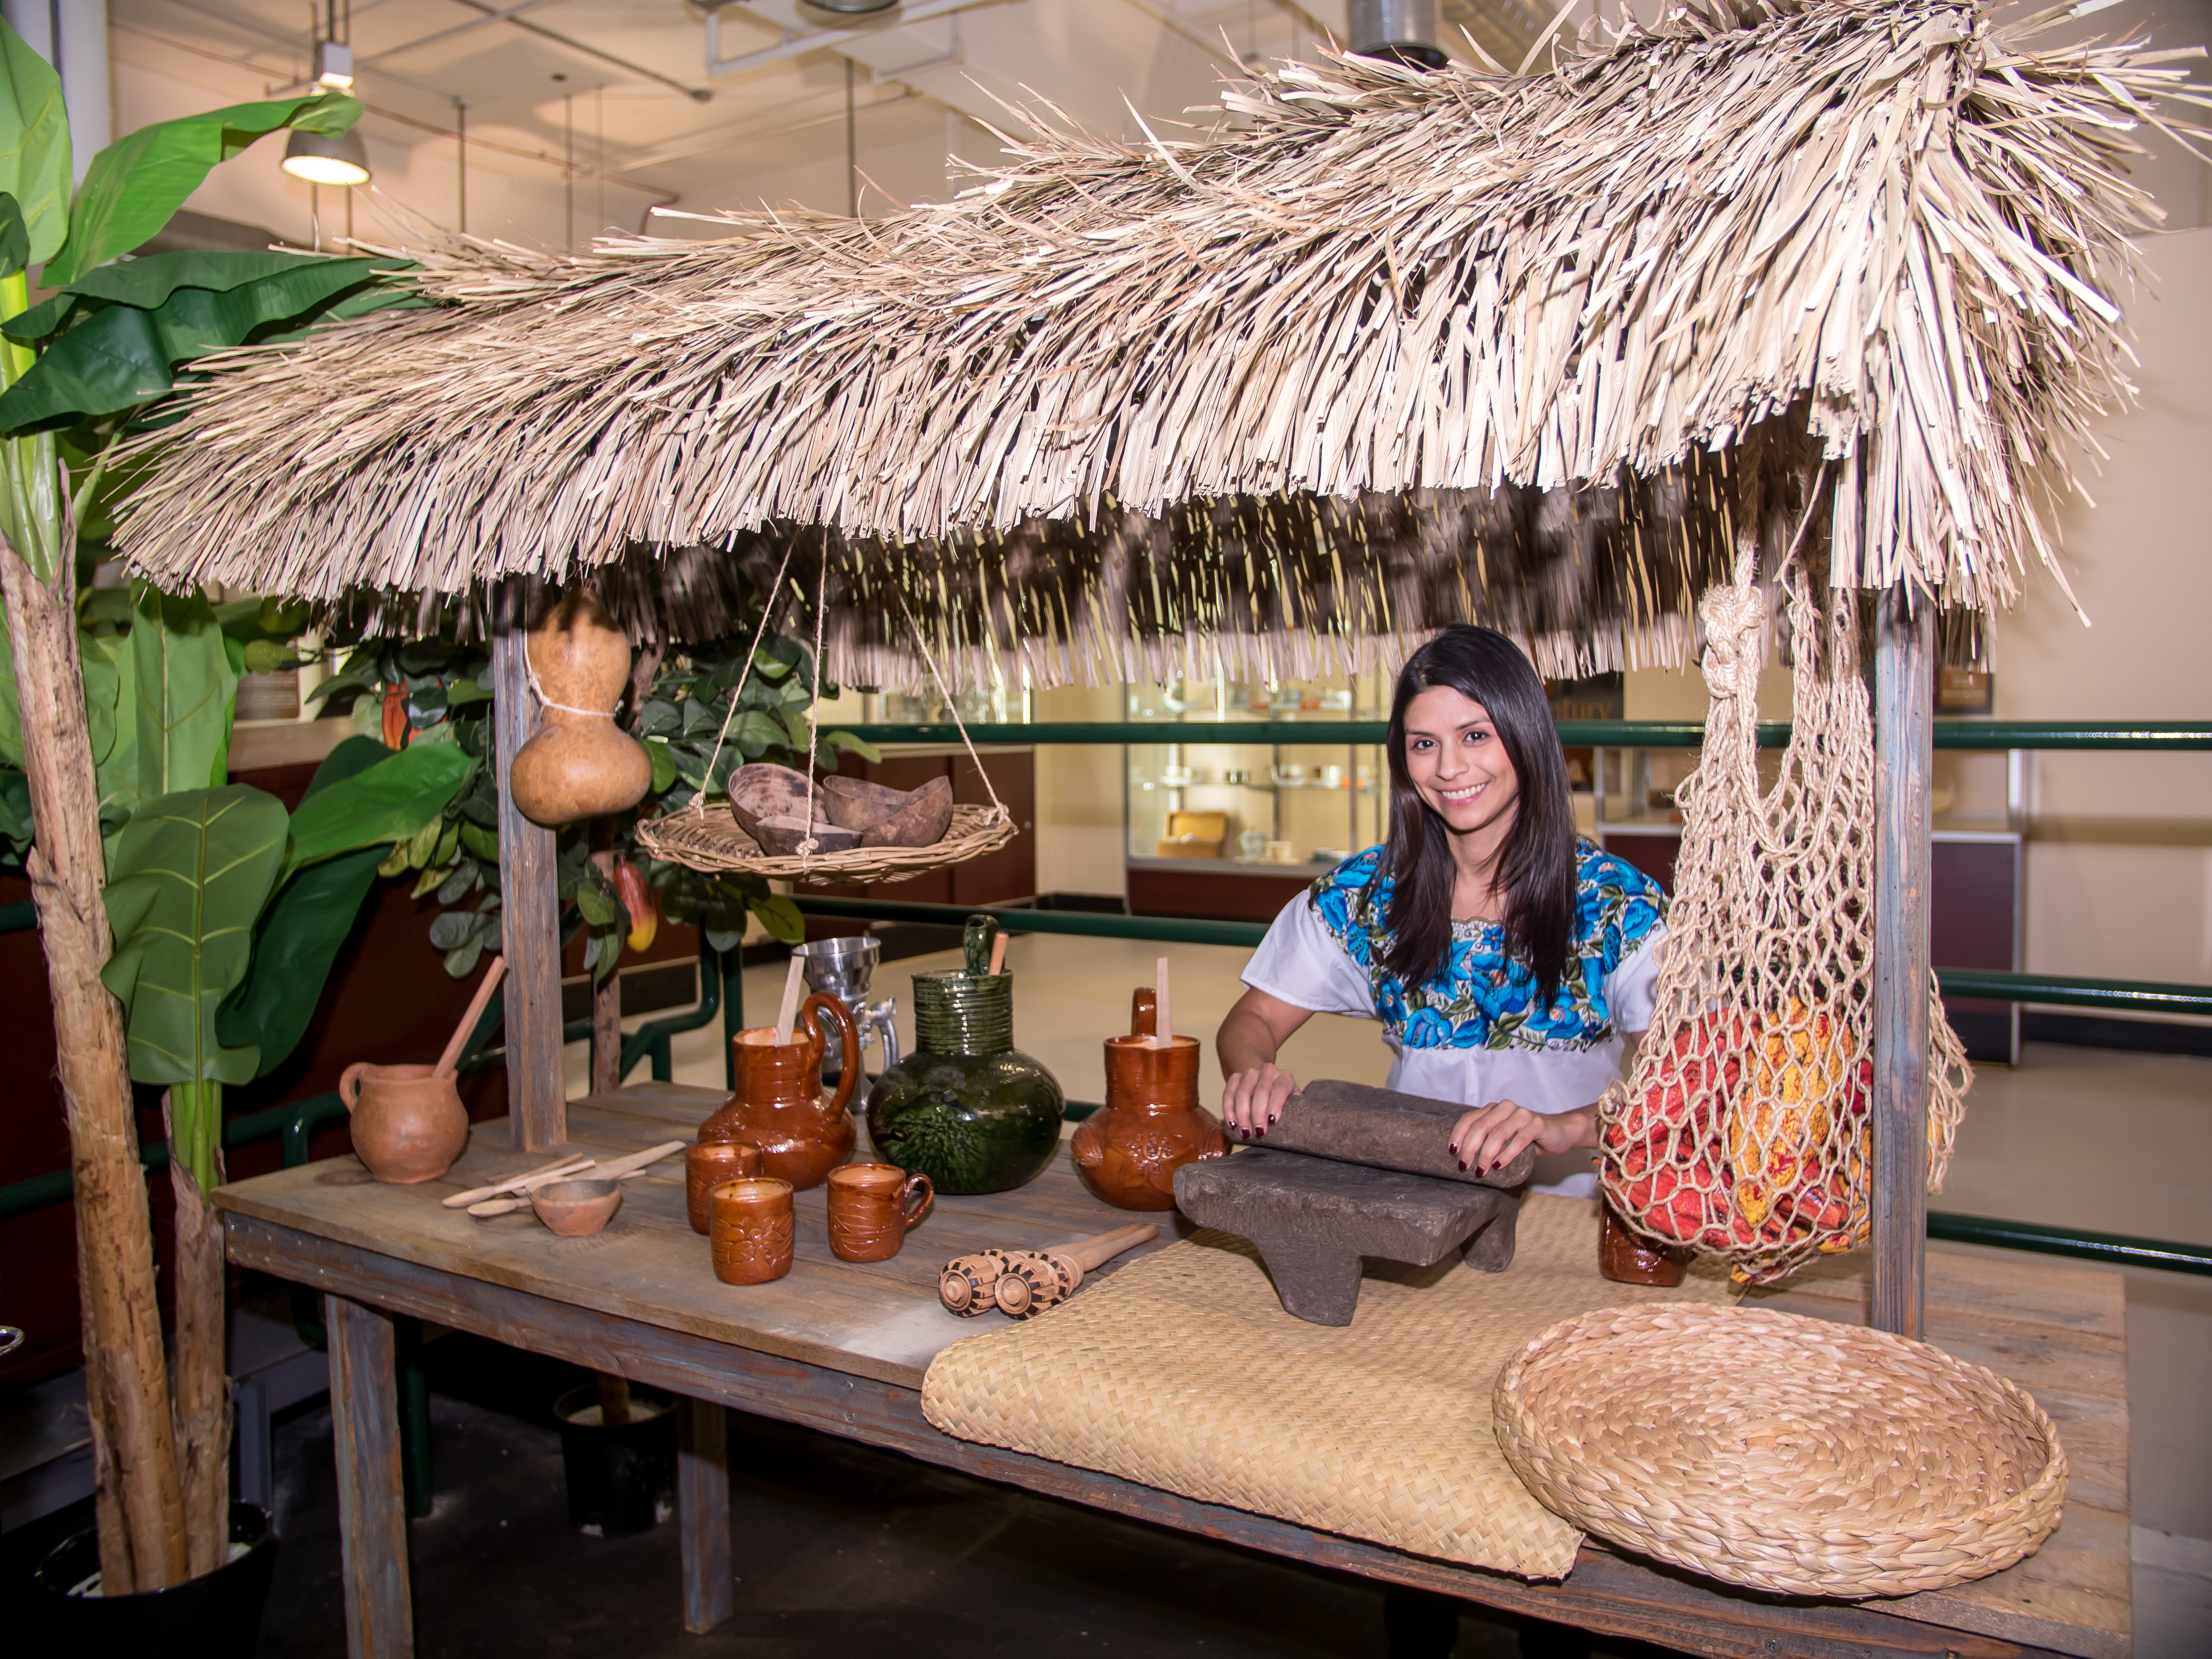 The museum includes a booth for making Mayan hot chocolate in traditional style.